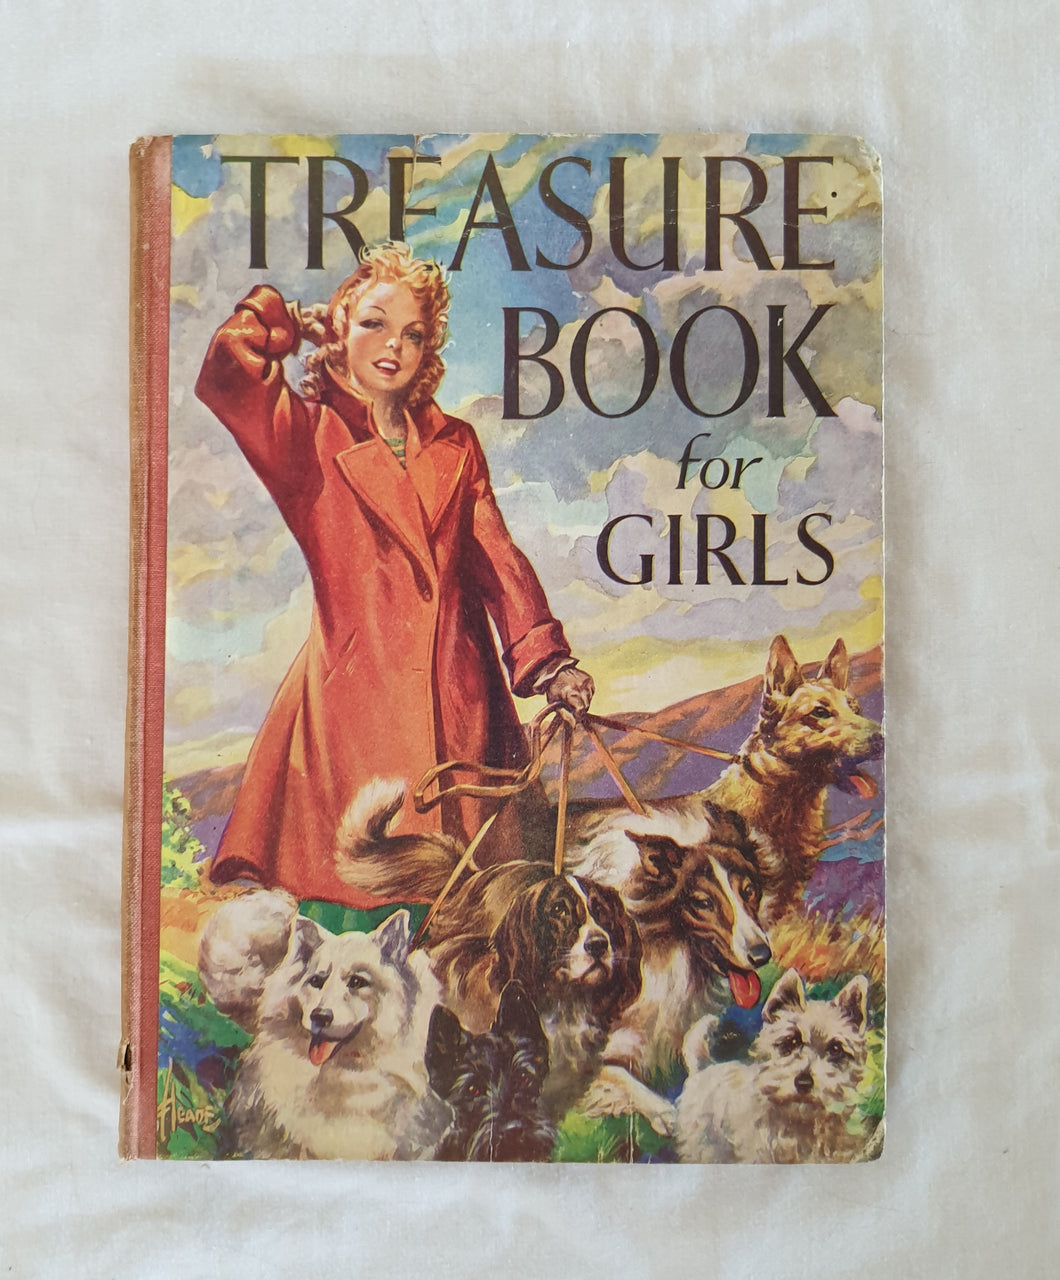 Treasure Book for Girls - The Children's Press